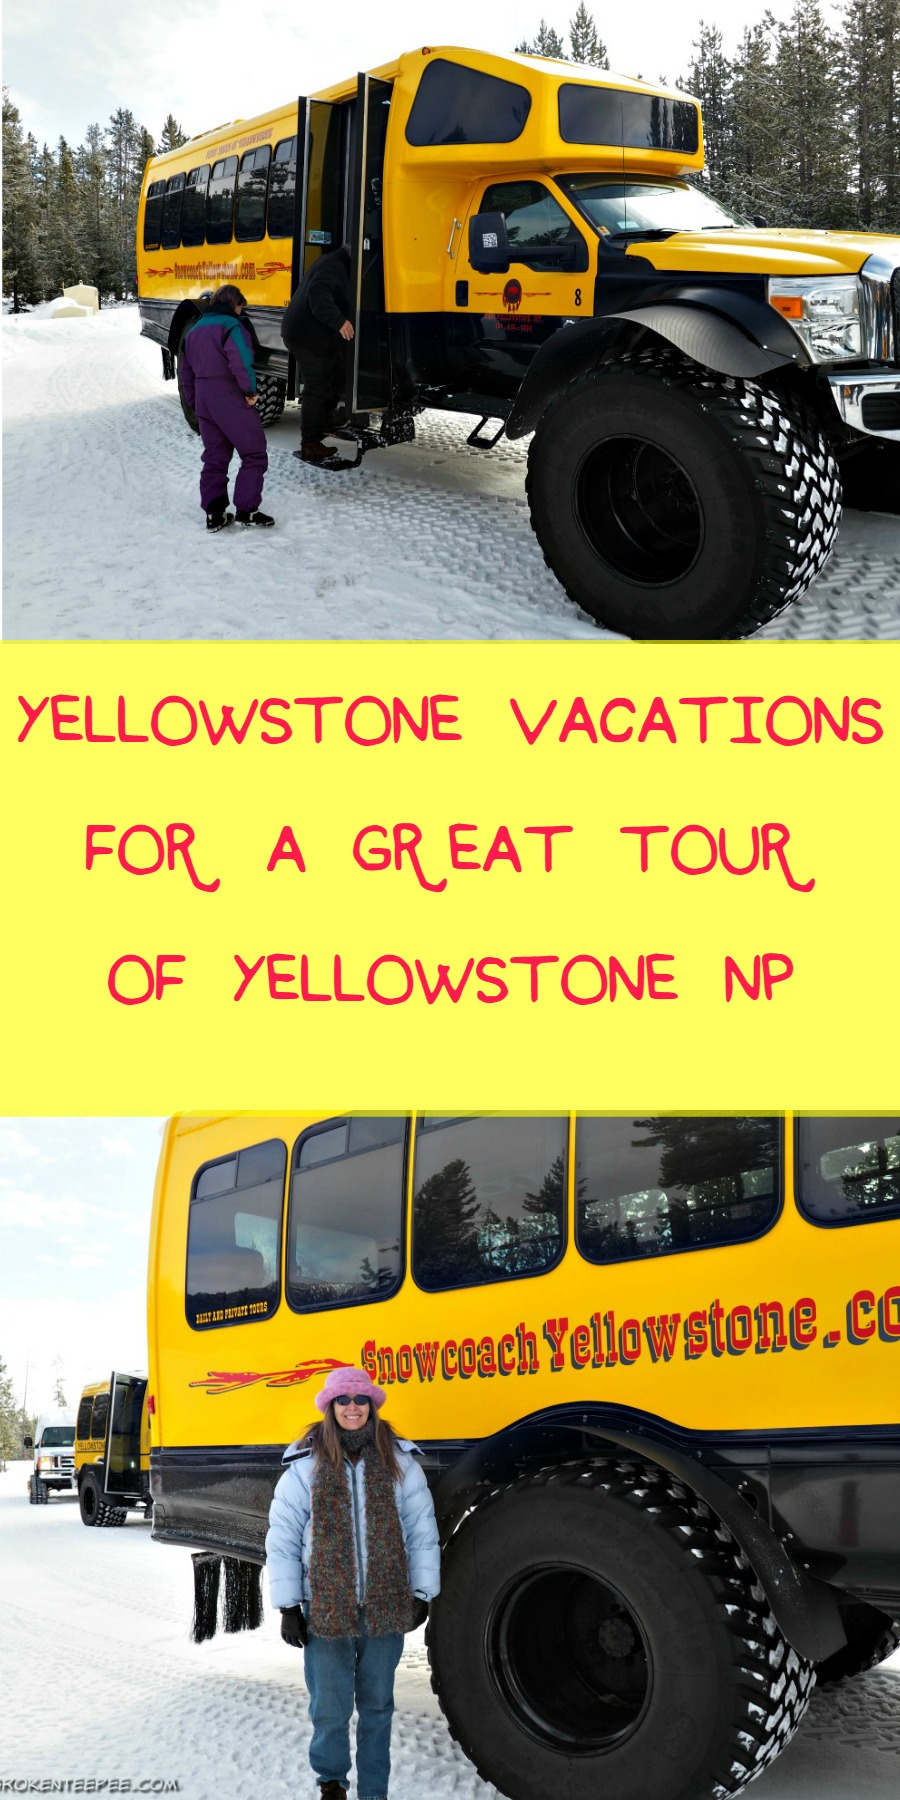 Yellowstone snowcoach tour, Yellowstone Vacations, AD